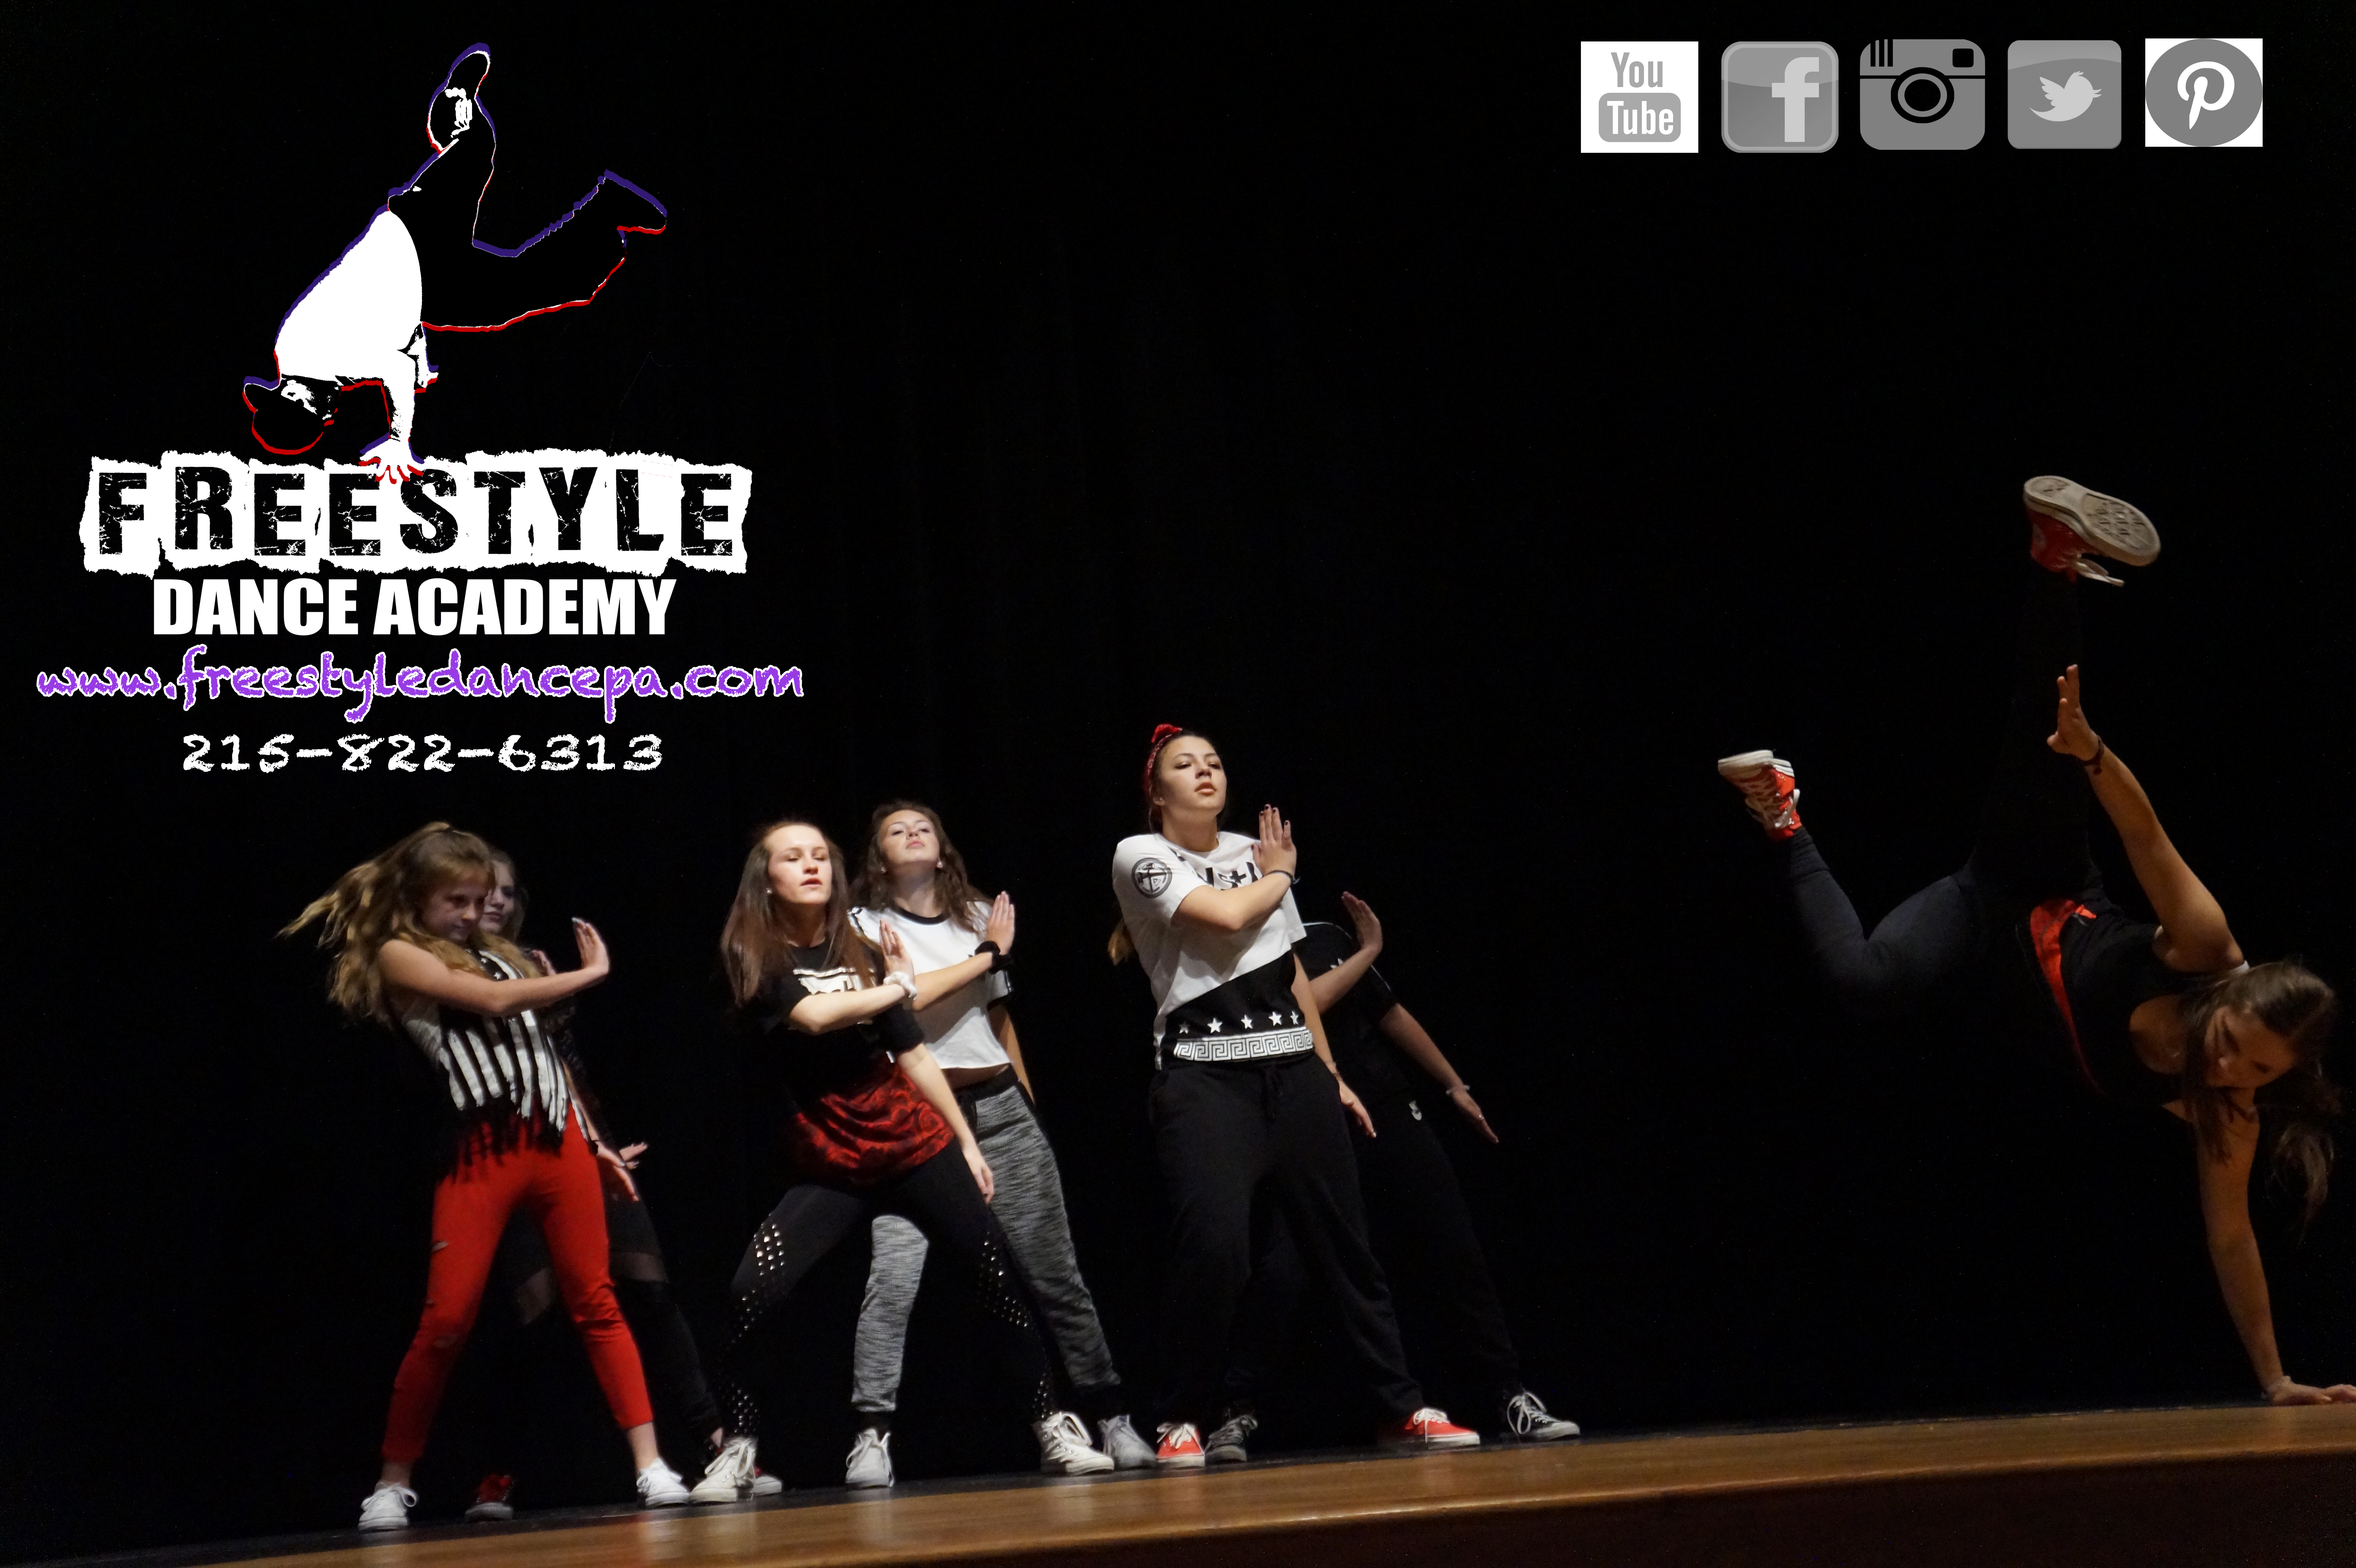 dance, dance class, dance studio, Freestyle Dance Academy, Warrington, Chalfont, Doylestown, Lansdale, jazz, hip-hop, ballet, tap, best of Bucks 2016,